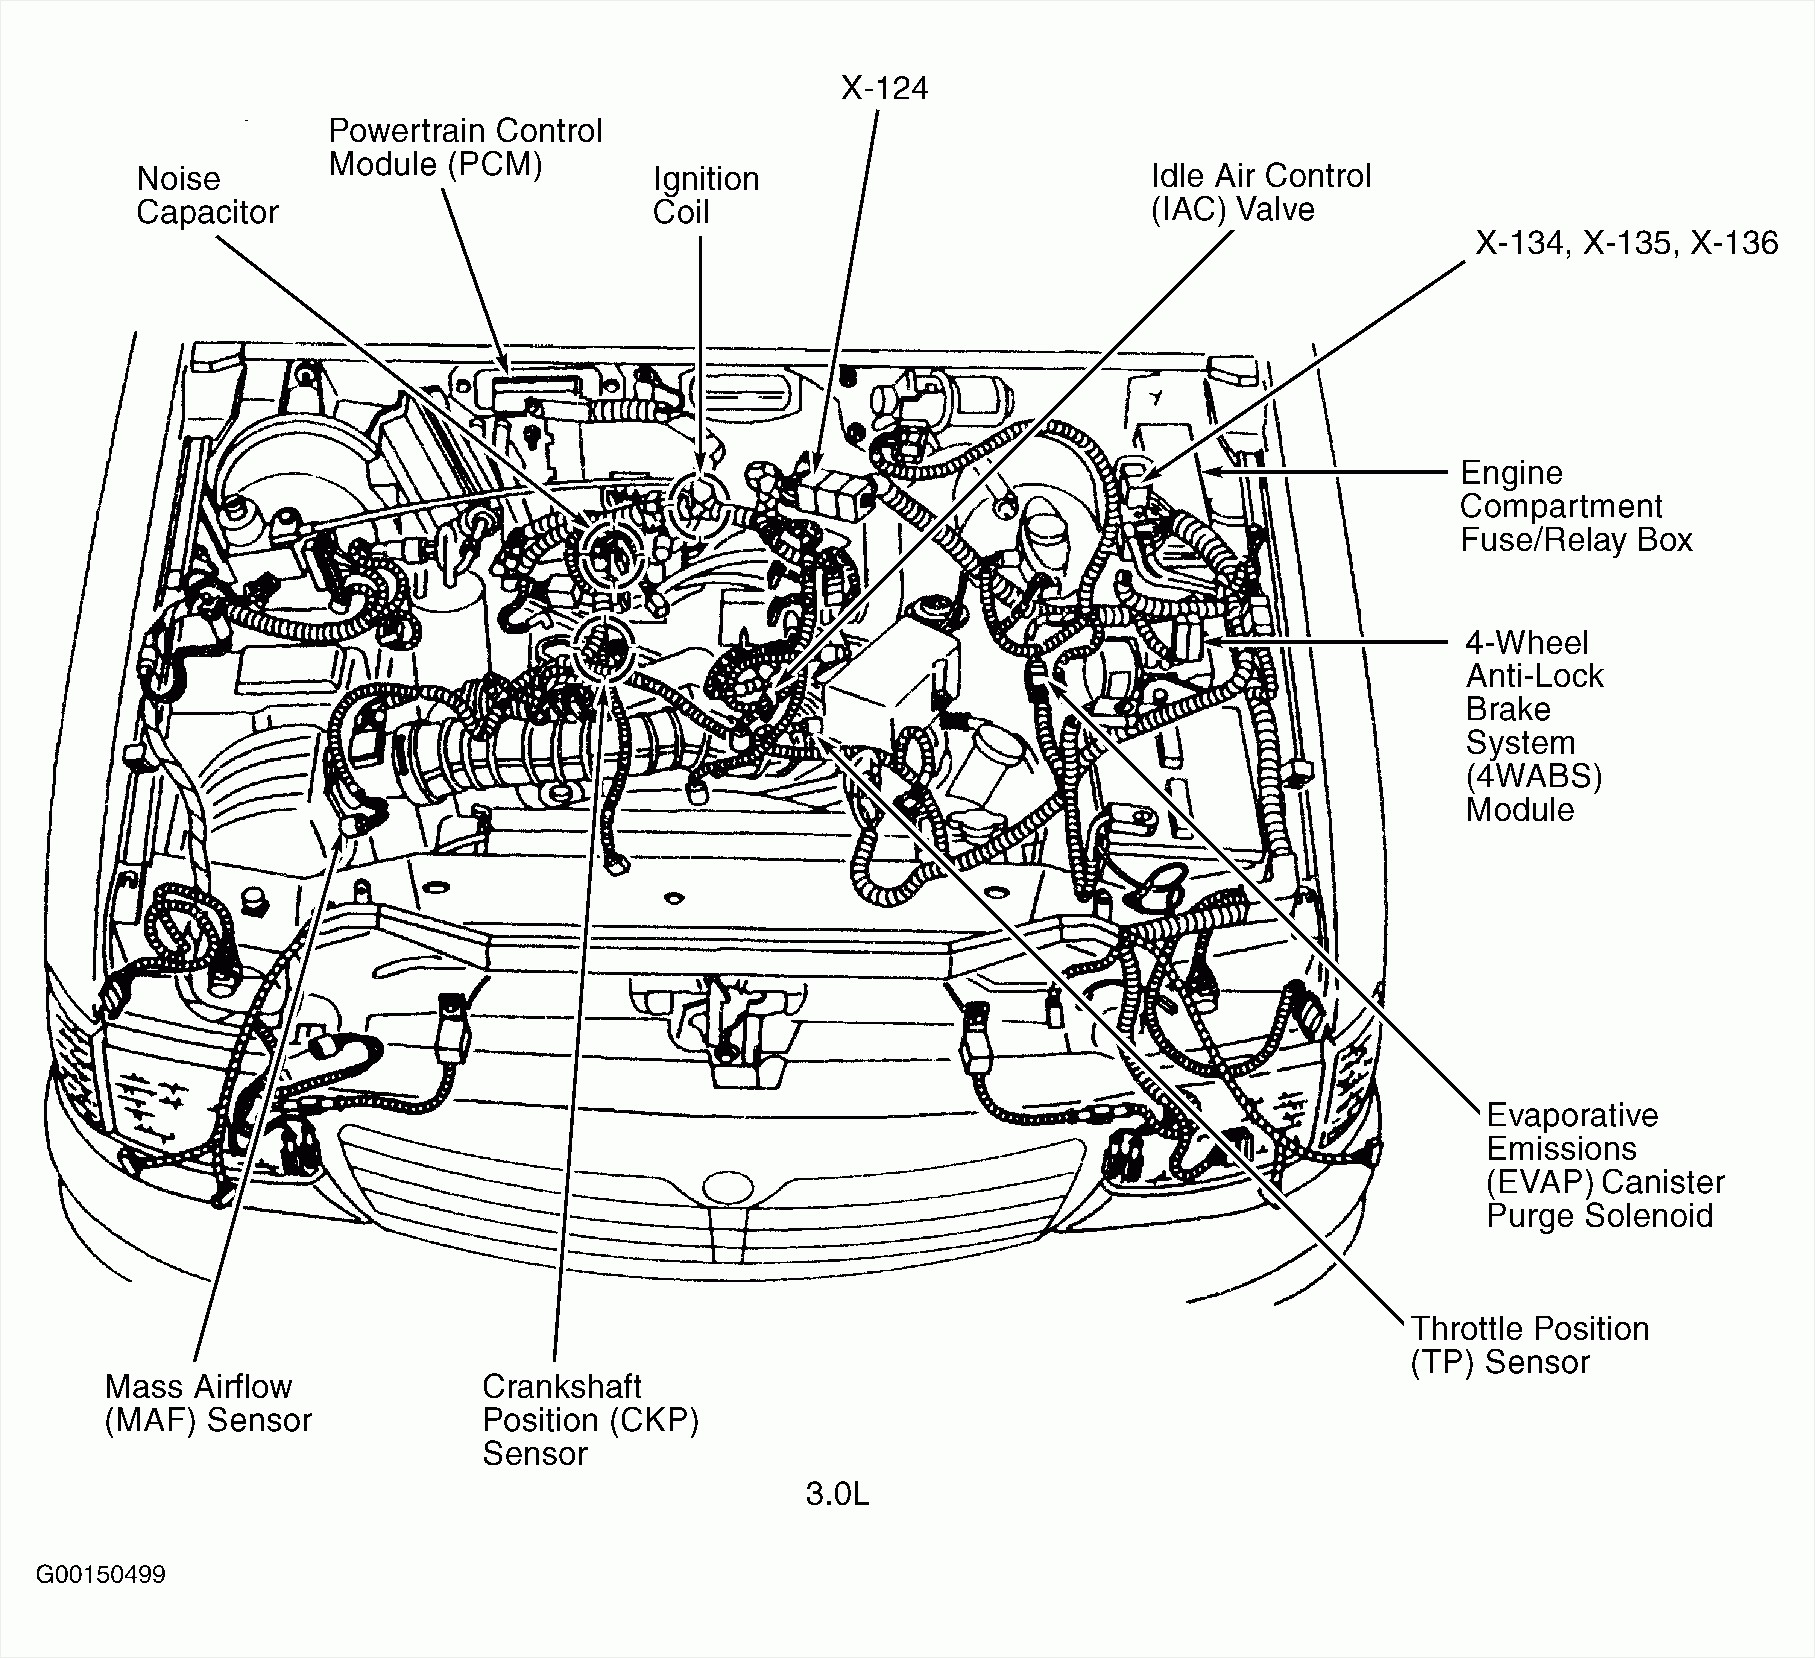 Toyota 3 0 V6 Engine Wiring Diagram on 1997 ford ranger fuse box diagram